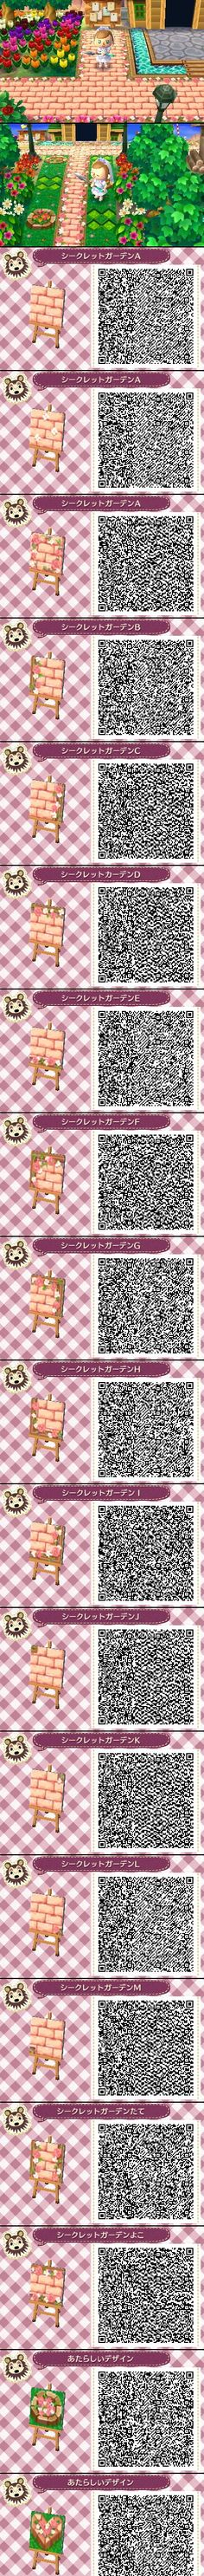 Animal Crossing: New Leaf - pink stone path QR-code